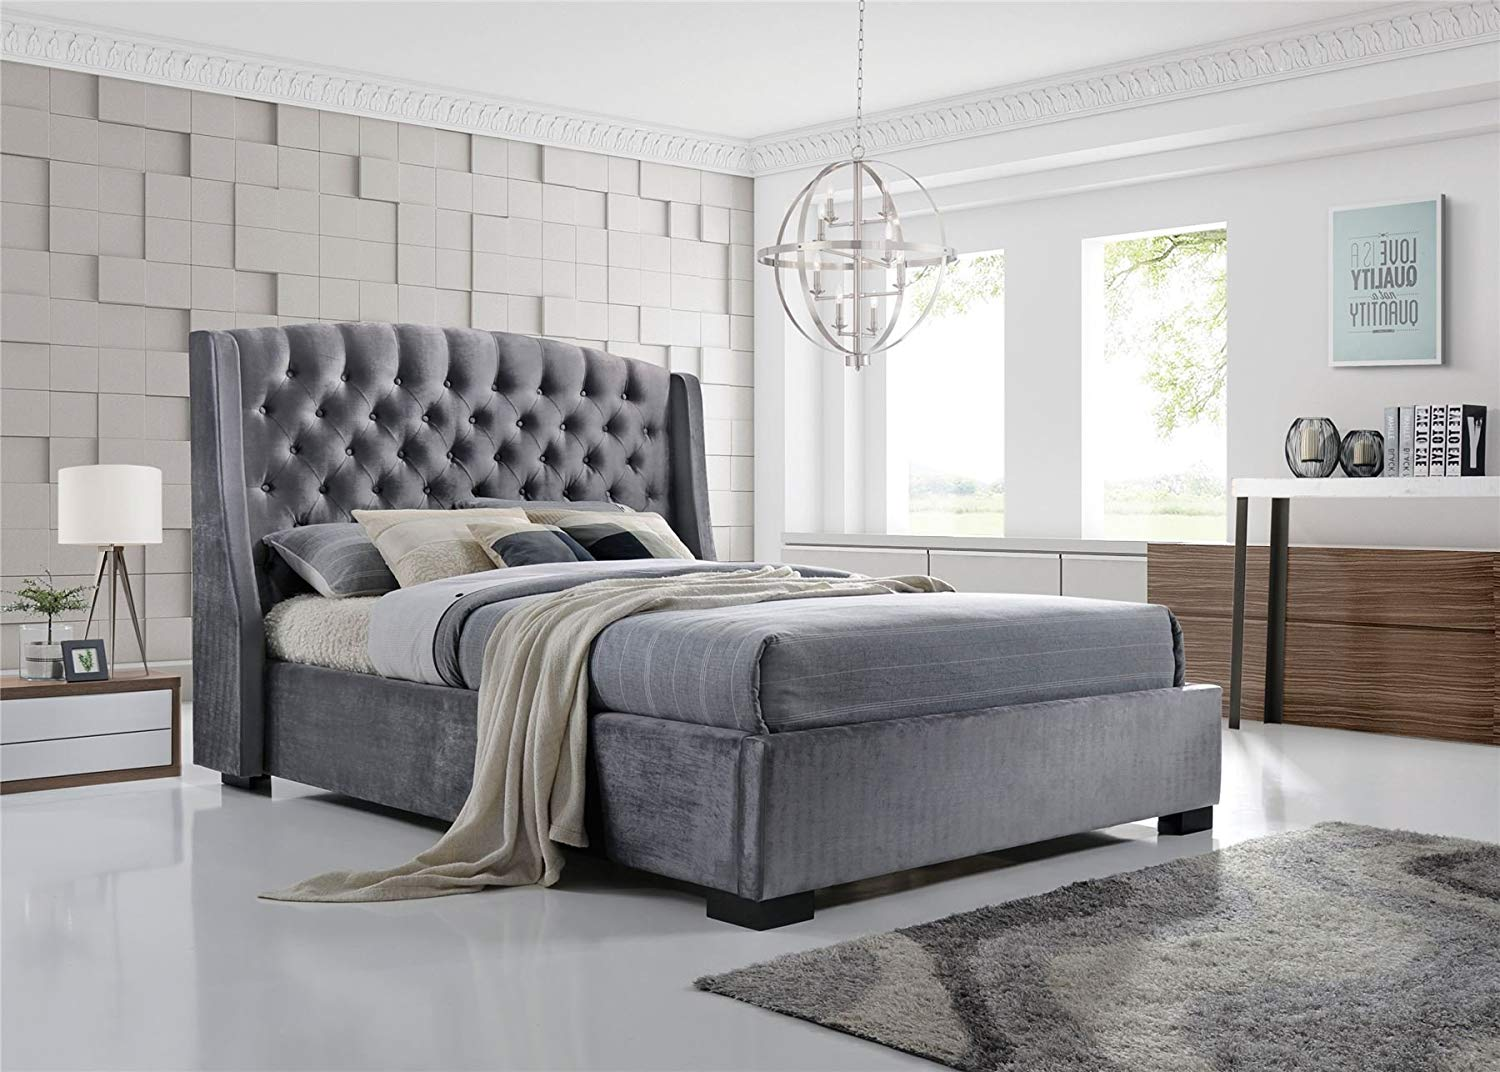 Wing Back Chesterfield King Size Bed Frame Modern Bed Grey Velvet Fabric Button Bed Buy New Model Bed Foam Bed Chesterfield Bed Product On Alibaba Com